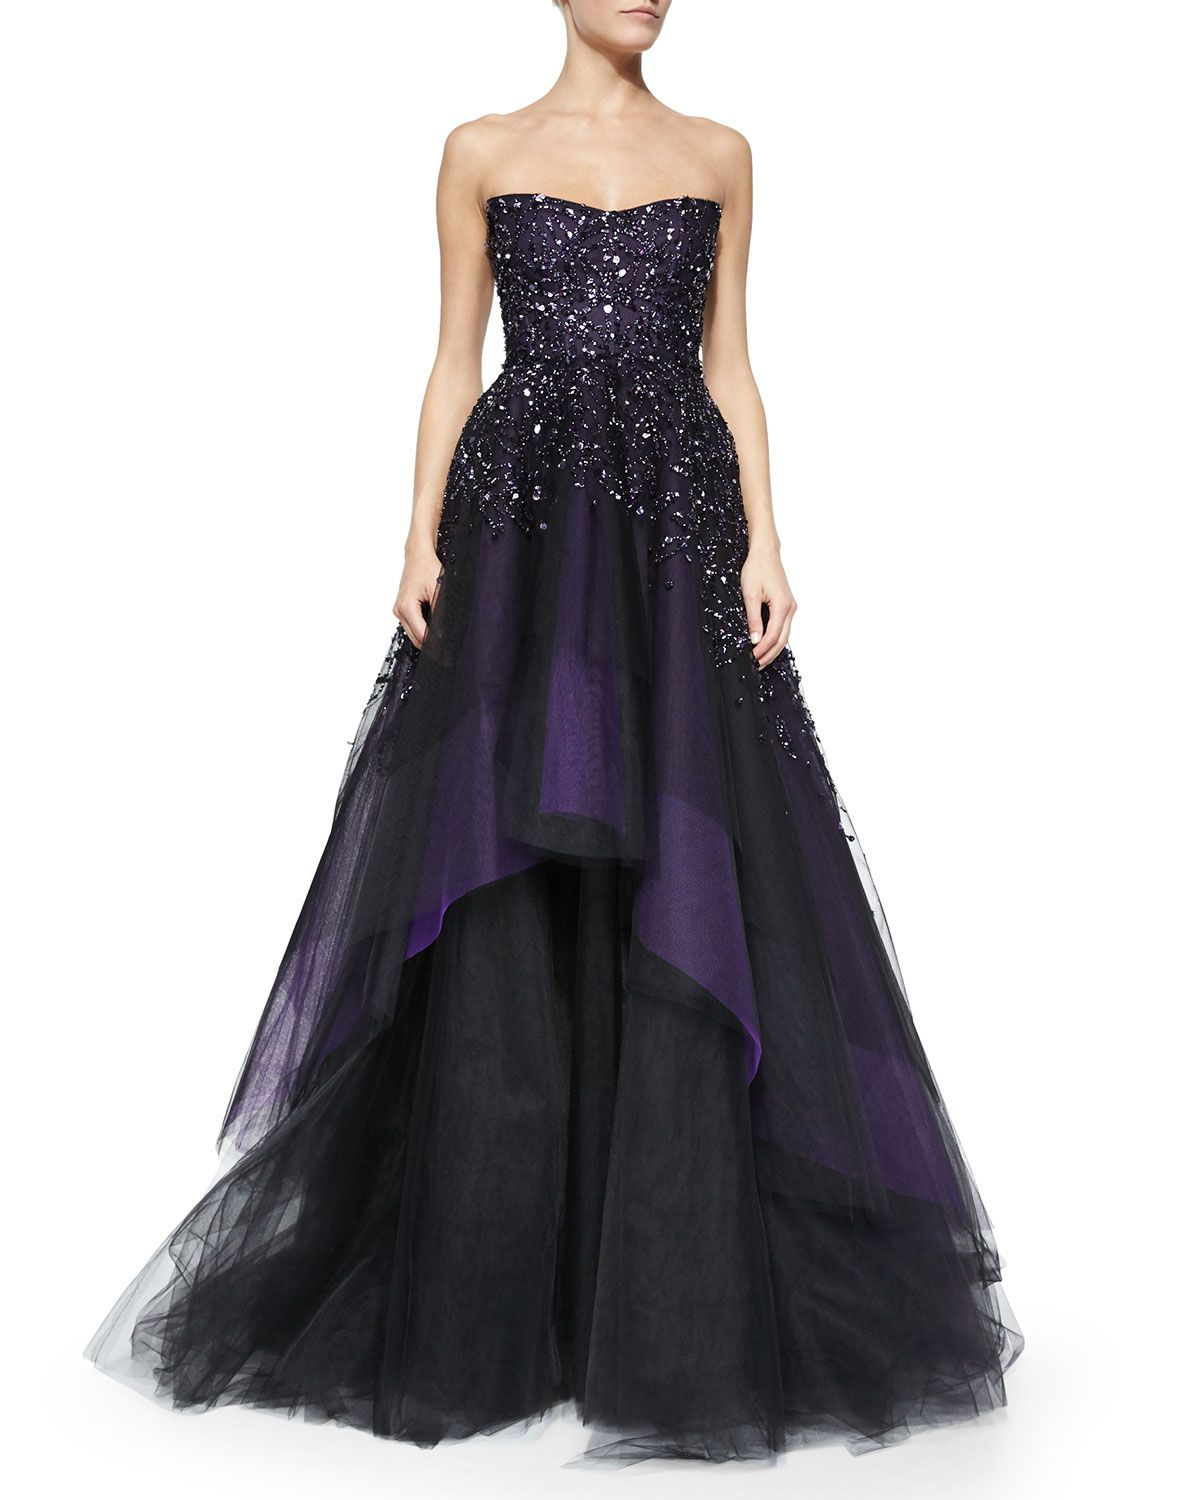 Strapless degrade embroidered ball gown plum by monique lhuillier strapless degrade embroidered ball gown plum by monique lhuillier at neiman marcus junglespirit Choice Image